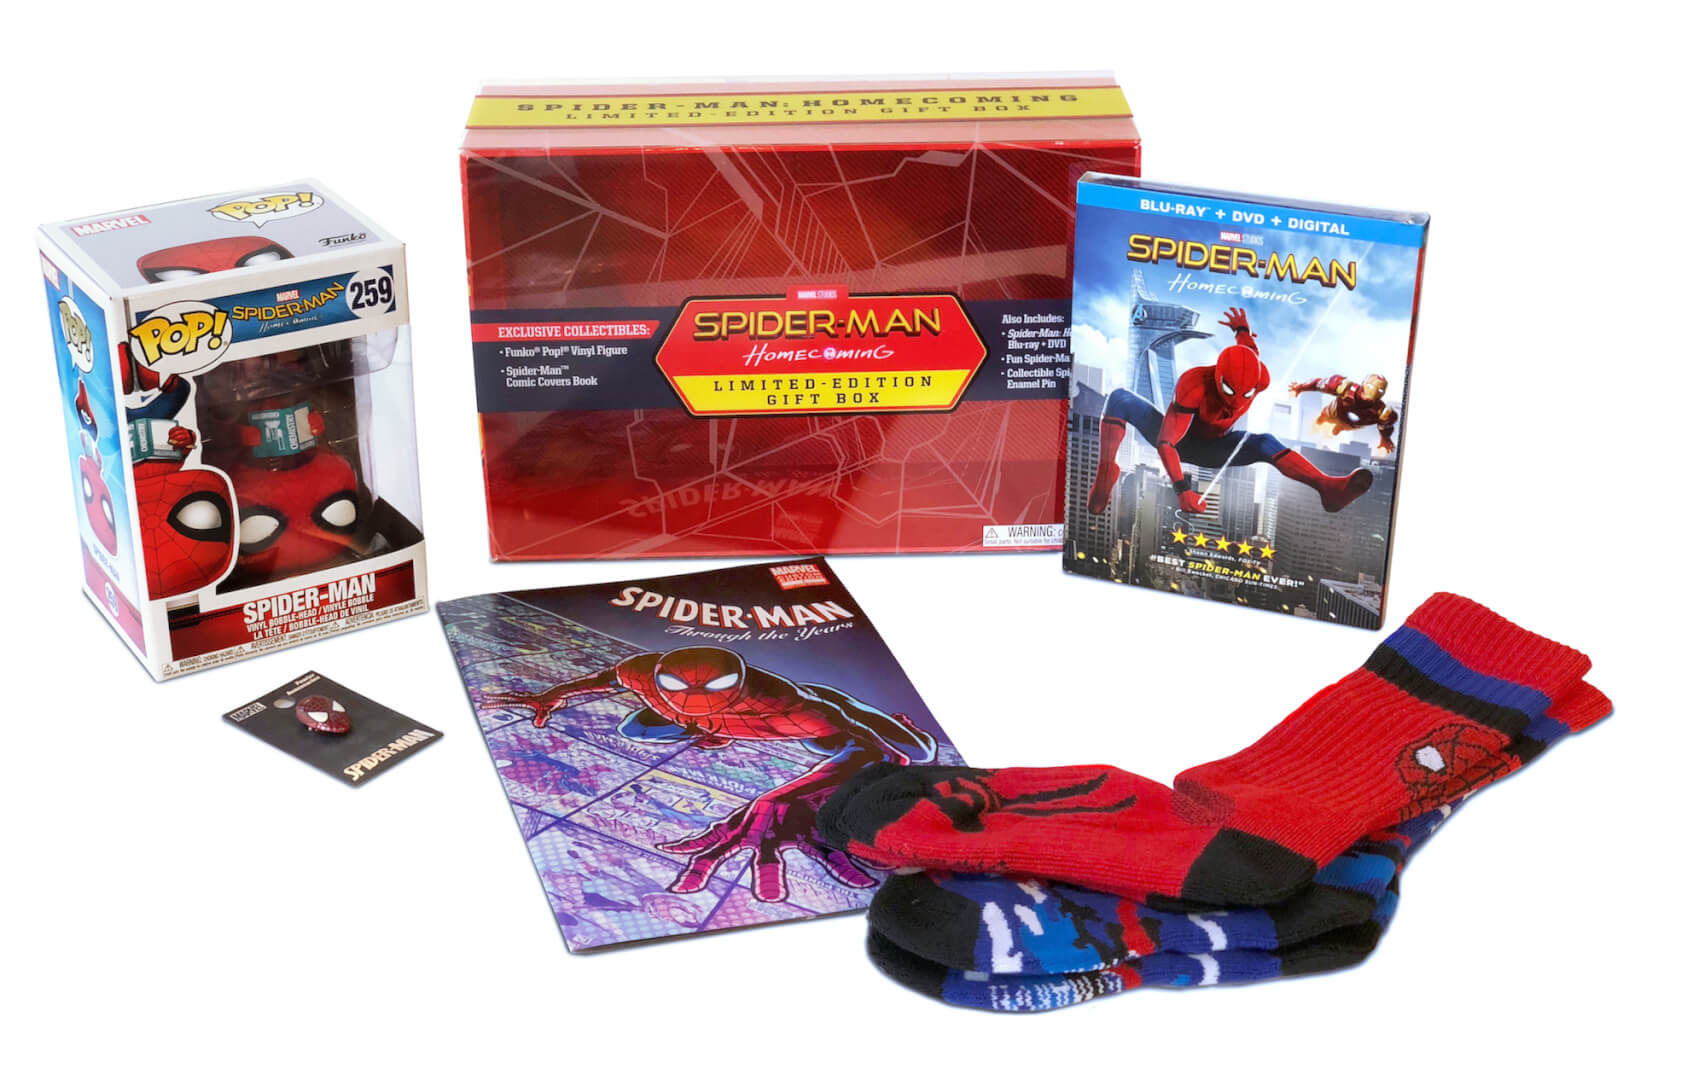 Spider-Man suit worn by Tom Holland being auctioned to